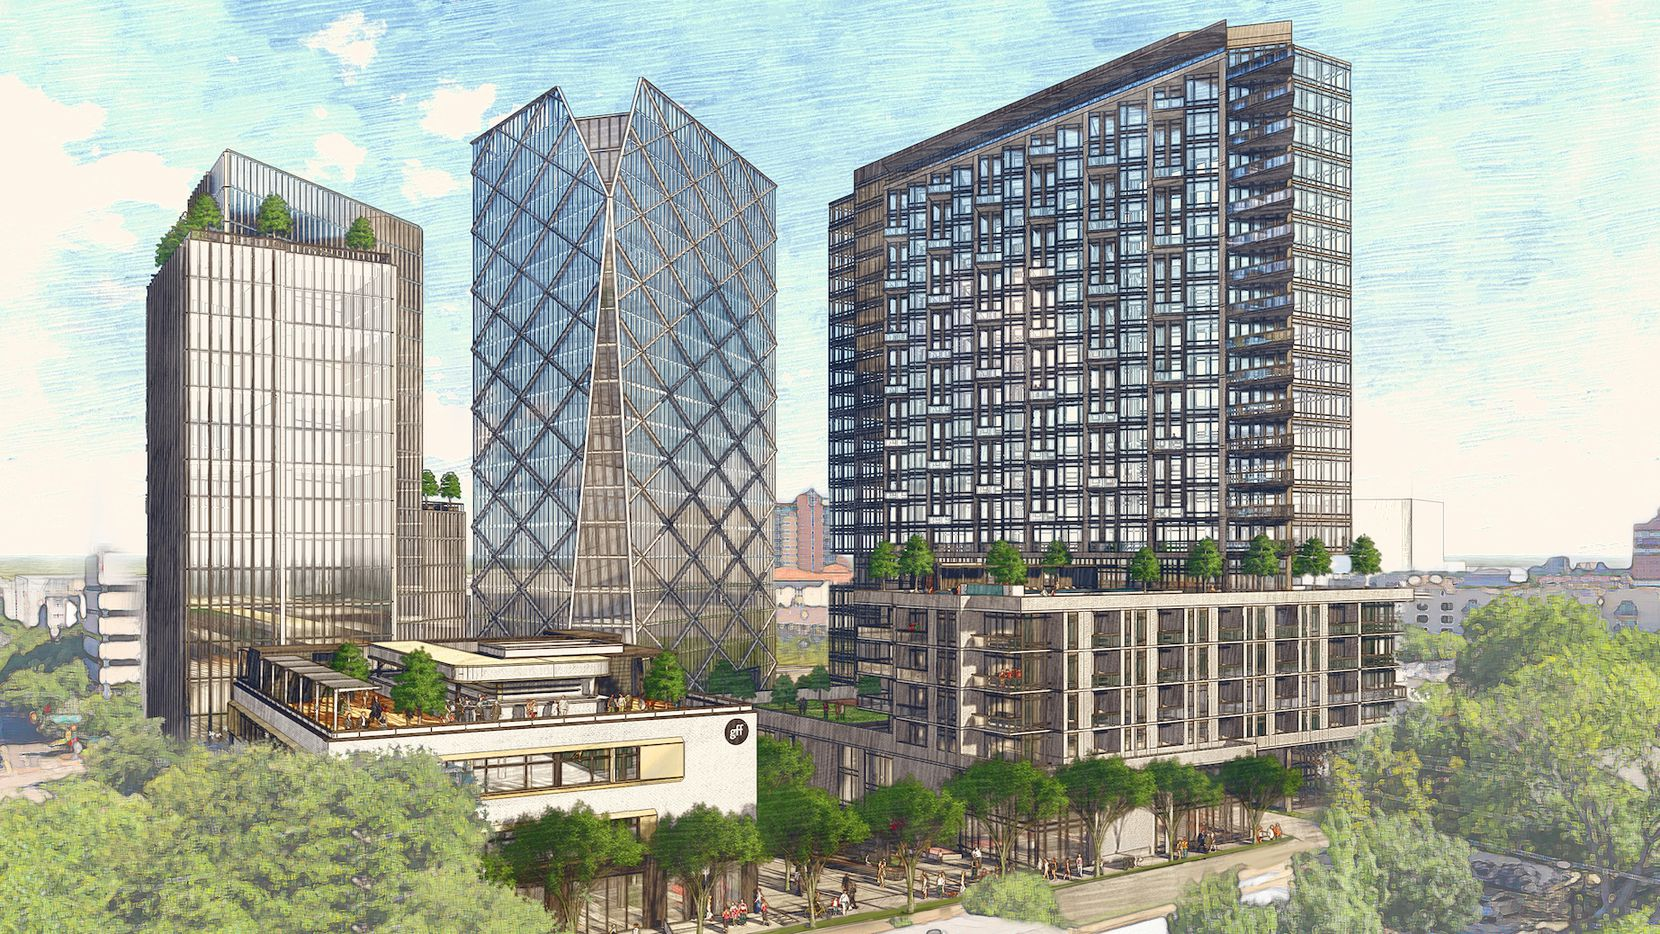 Ryan Cos.' planned Uptown Dallas project will include (from left to right) a hotel, offices and residential towers.